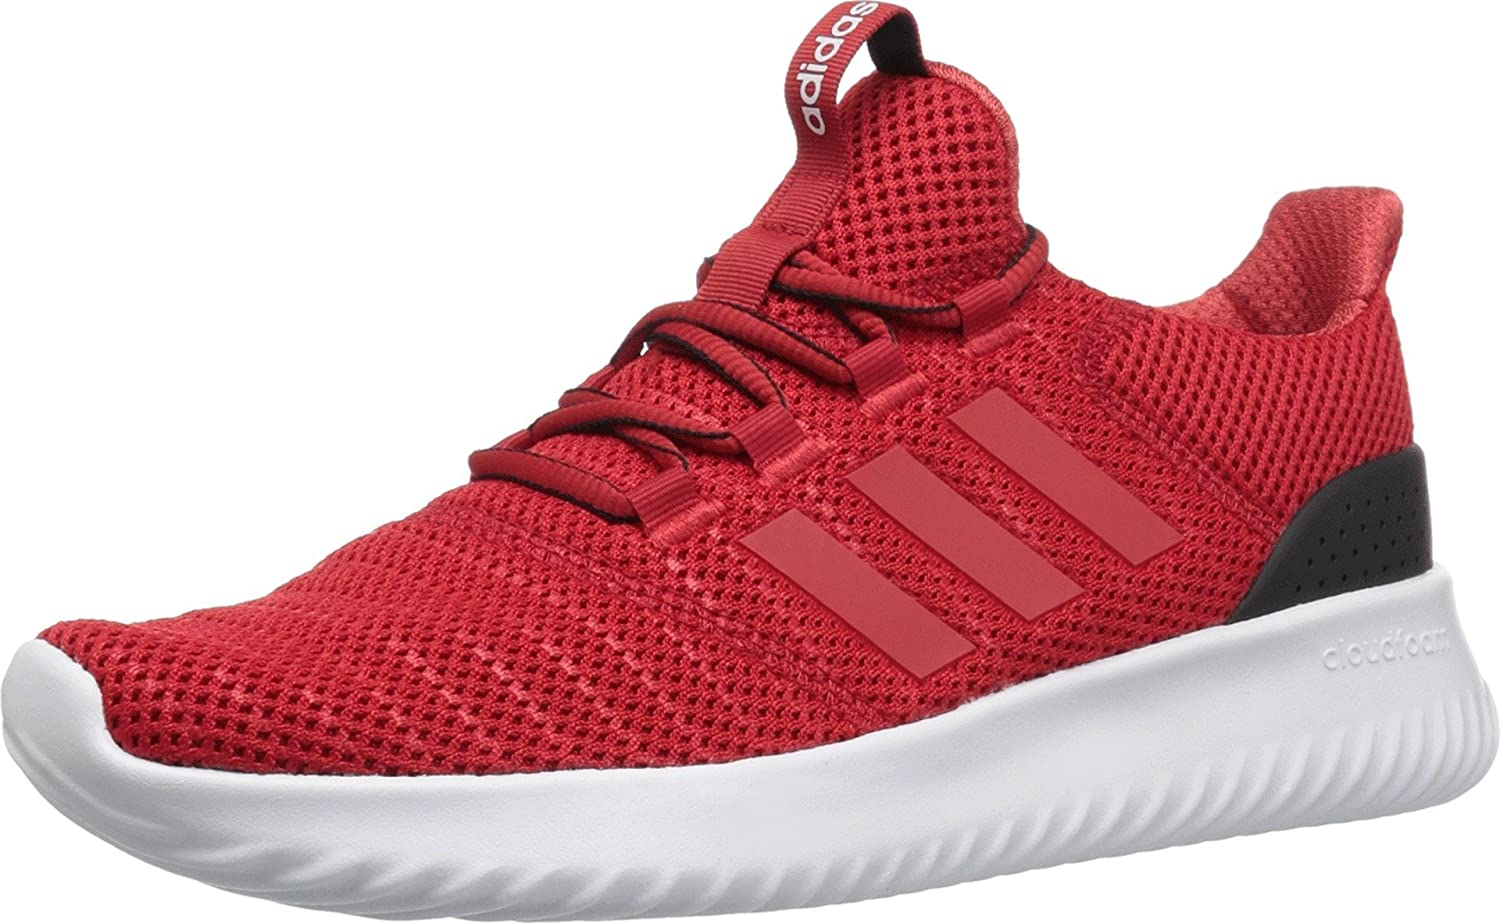 adidas Men's Cloudfoam Ultimate Running Shoes